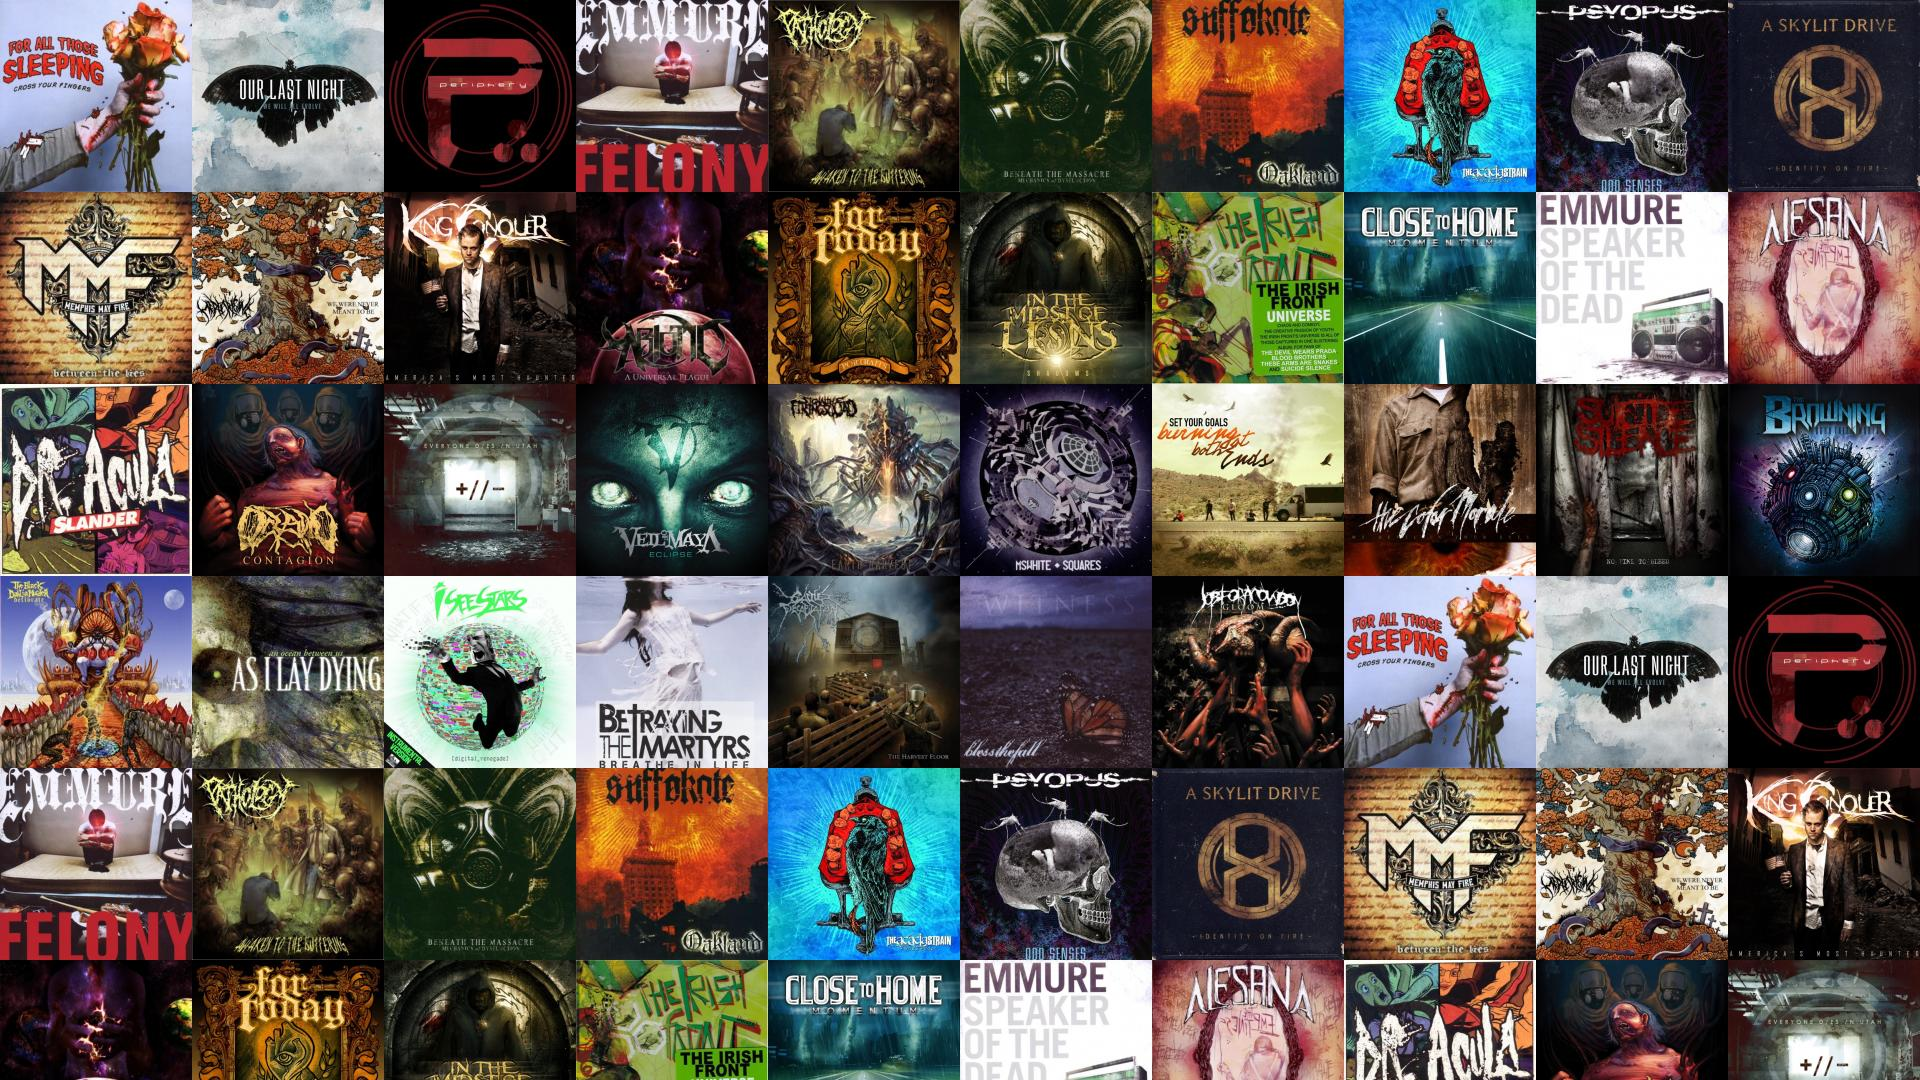 dfe3adb28b3 Create tiled desktop wallpapers with album art video game and dvd 1920x1080